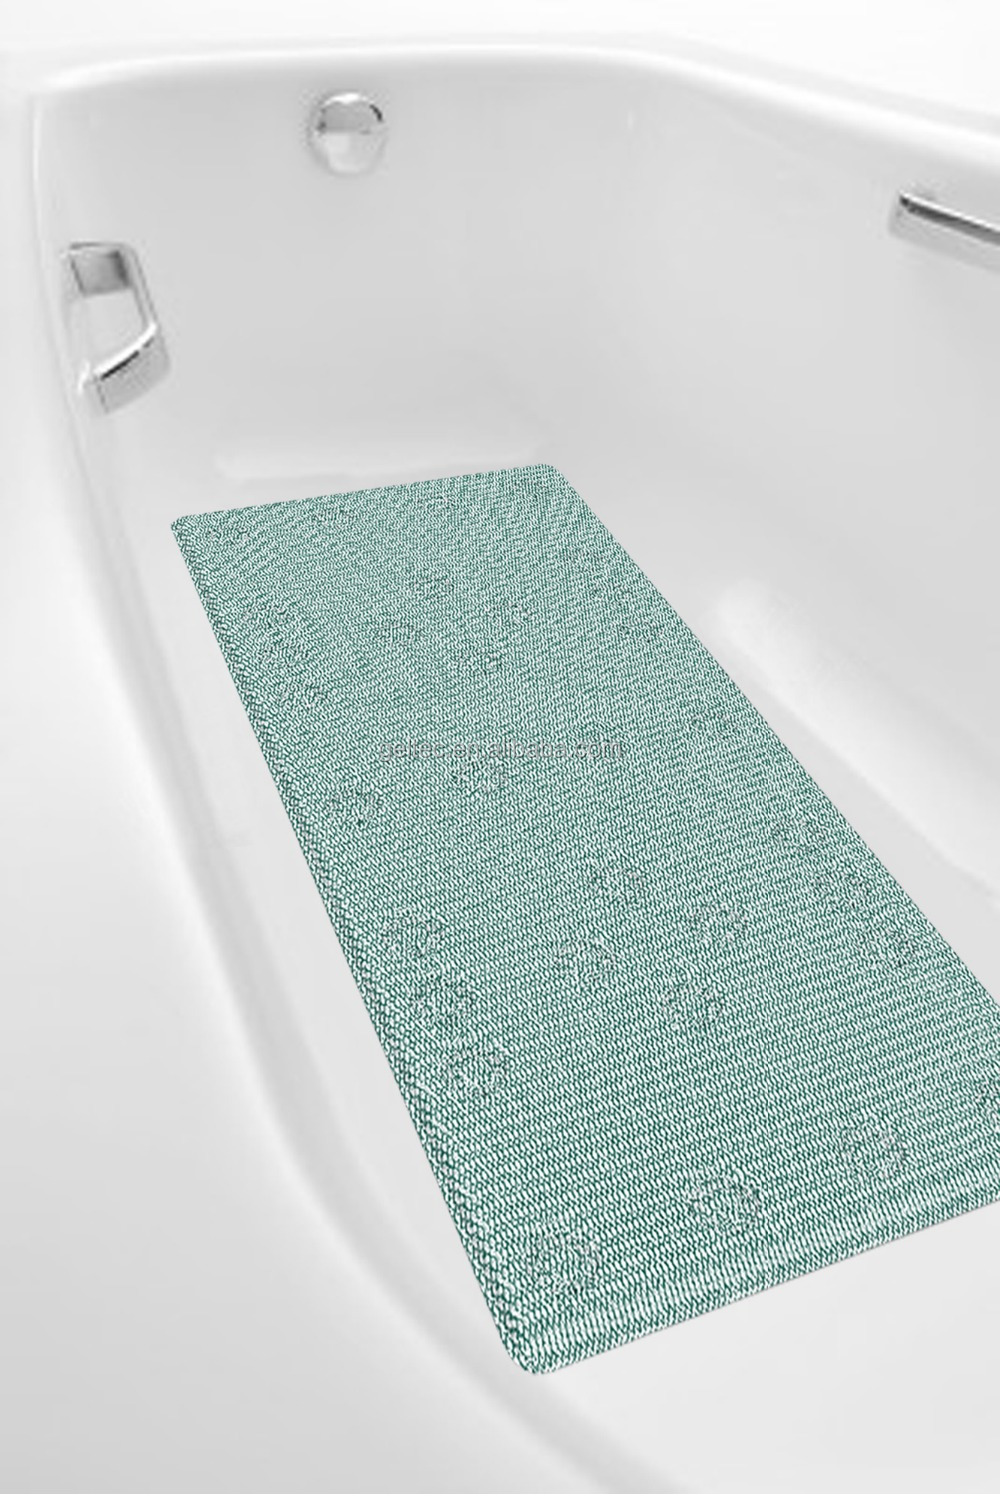 In Tub Bathmat Round Shower Mat Custom Tub Mats Bathroom